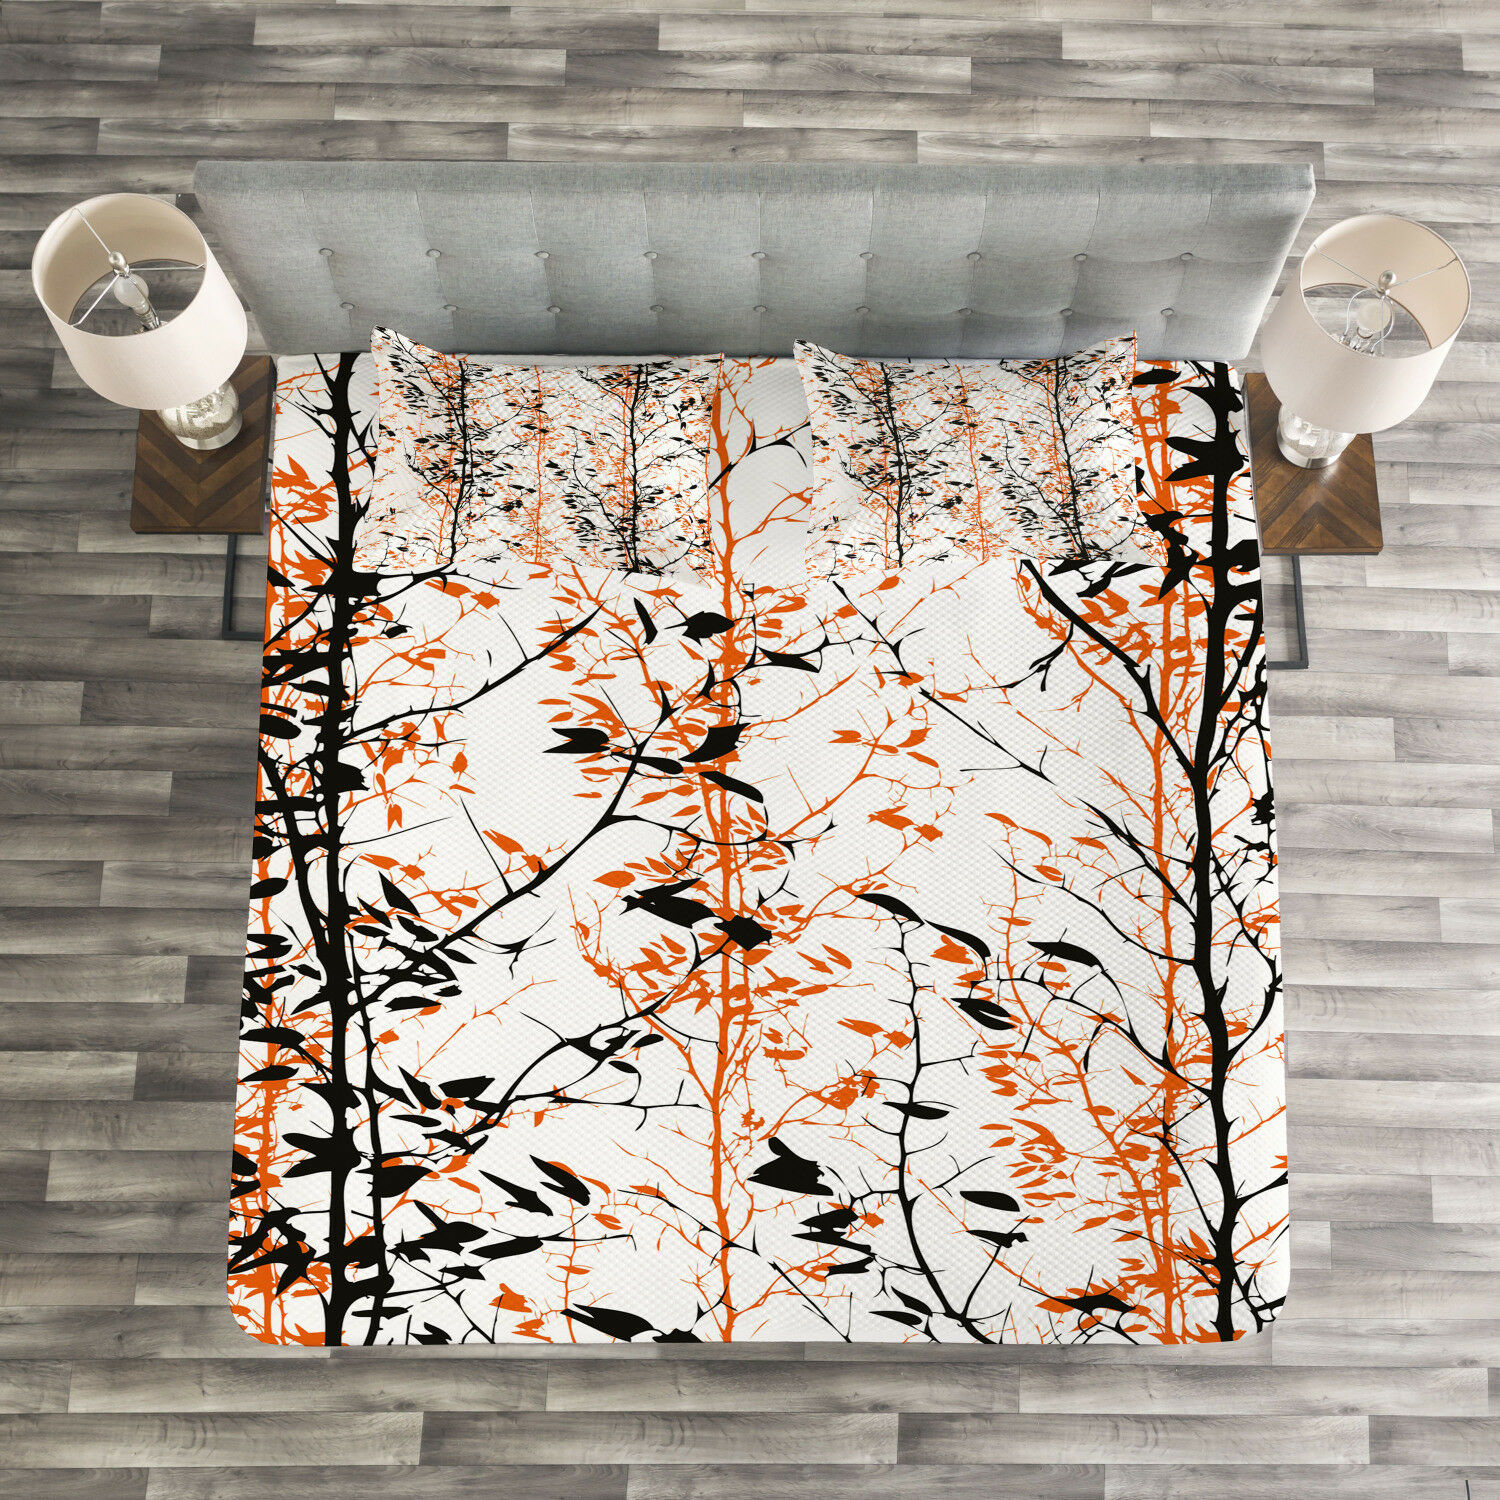 Modern Quilted Bedspread & Pillow Shams Set, Tree Silhouettes Artwork Print